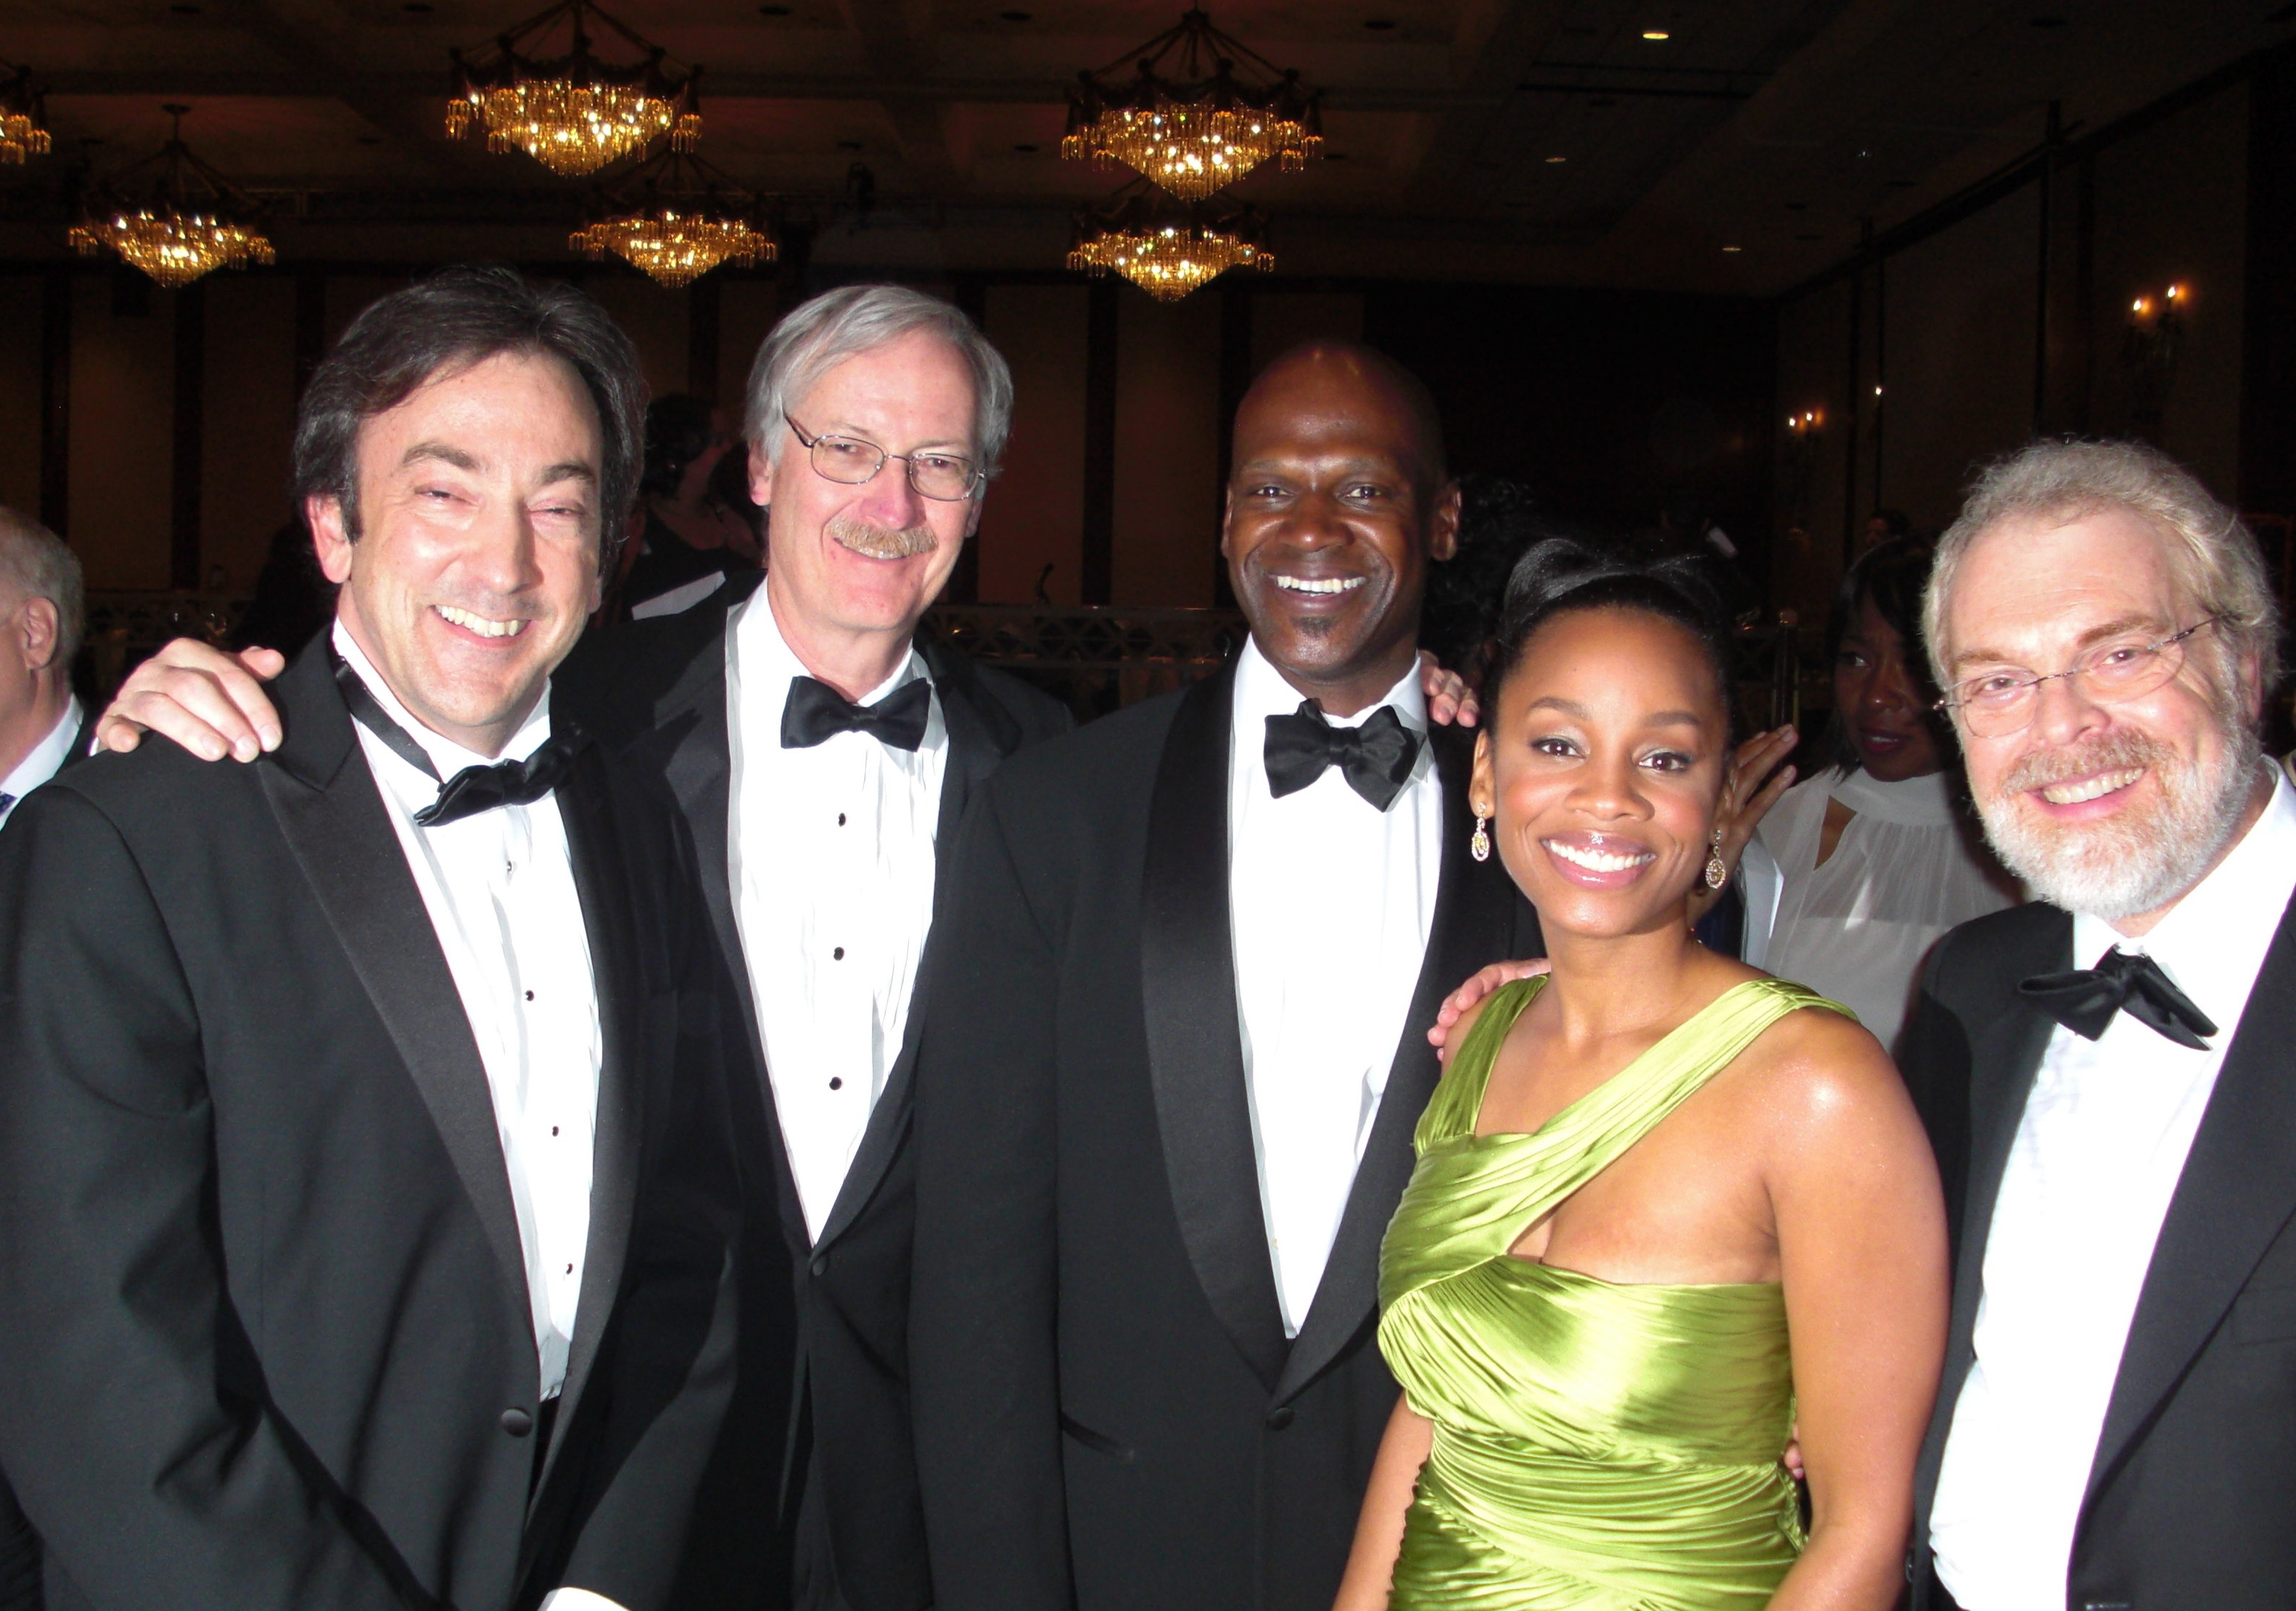 Ron Clements, John Musker, Anika Noni Rose, Rob Edwards, and Peter Del Vecho